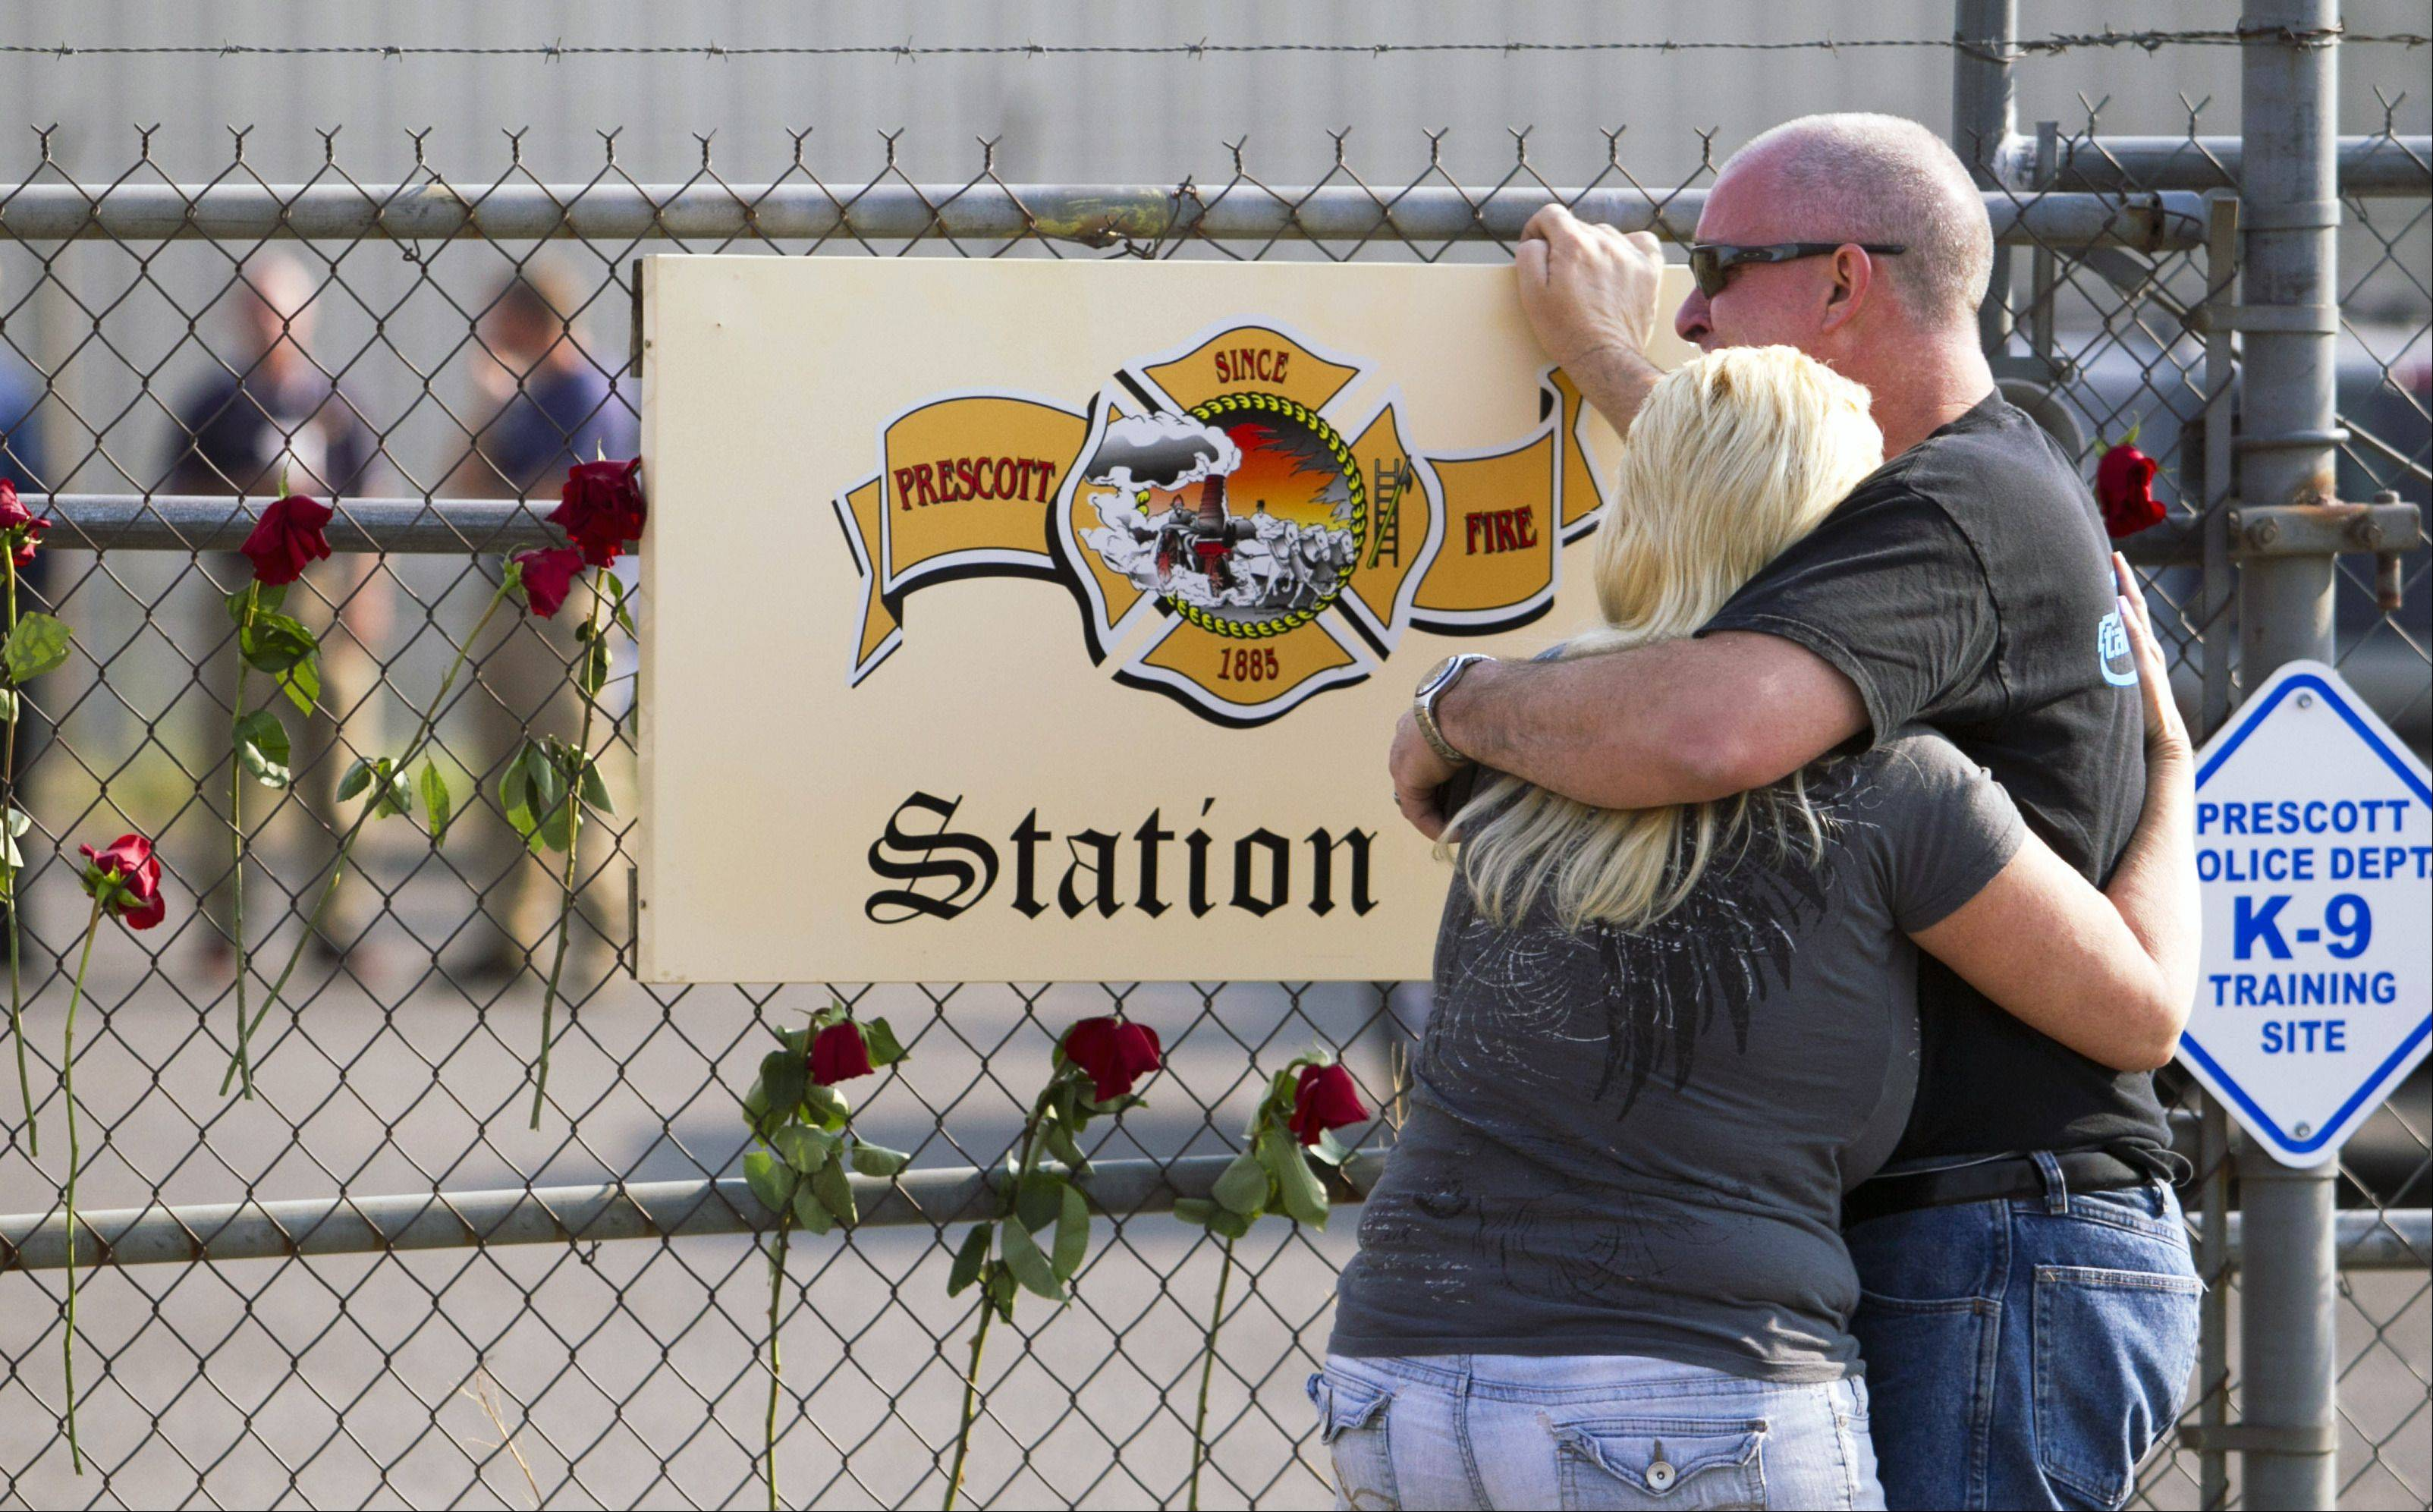 David Turbyfill, father of firefighter Travis Turbyfill, who was killed fighting the Yarnell Hill Fire, is comforted by his wife, Shari Turbyfill in front of Prescott Fire Station 7 on Monday, July 1, 2013 in Prescott, Ariz.